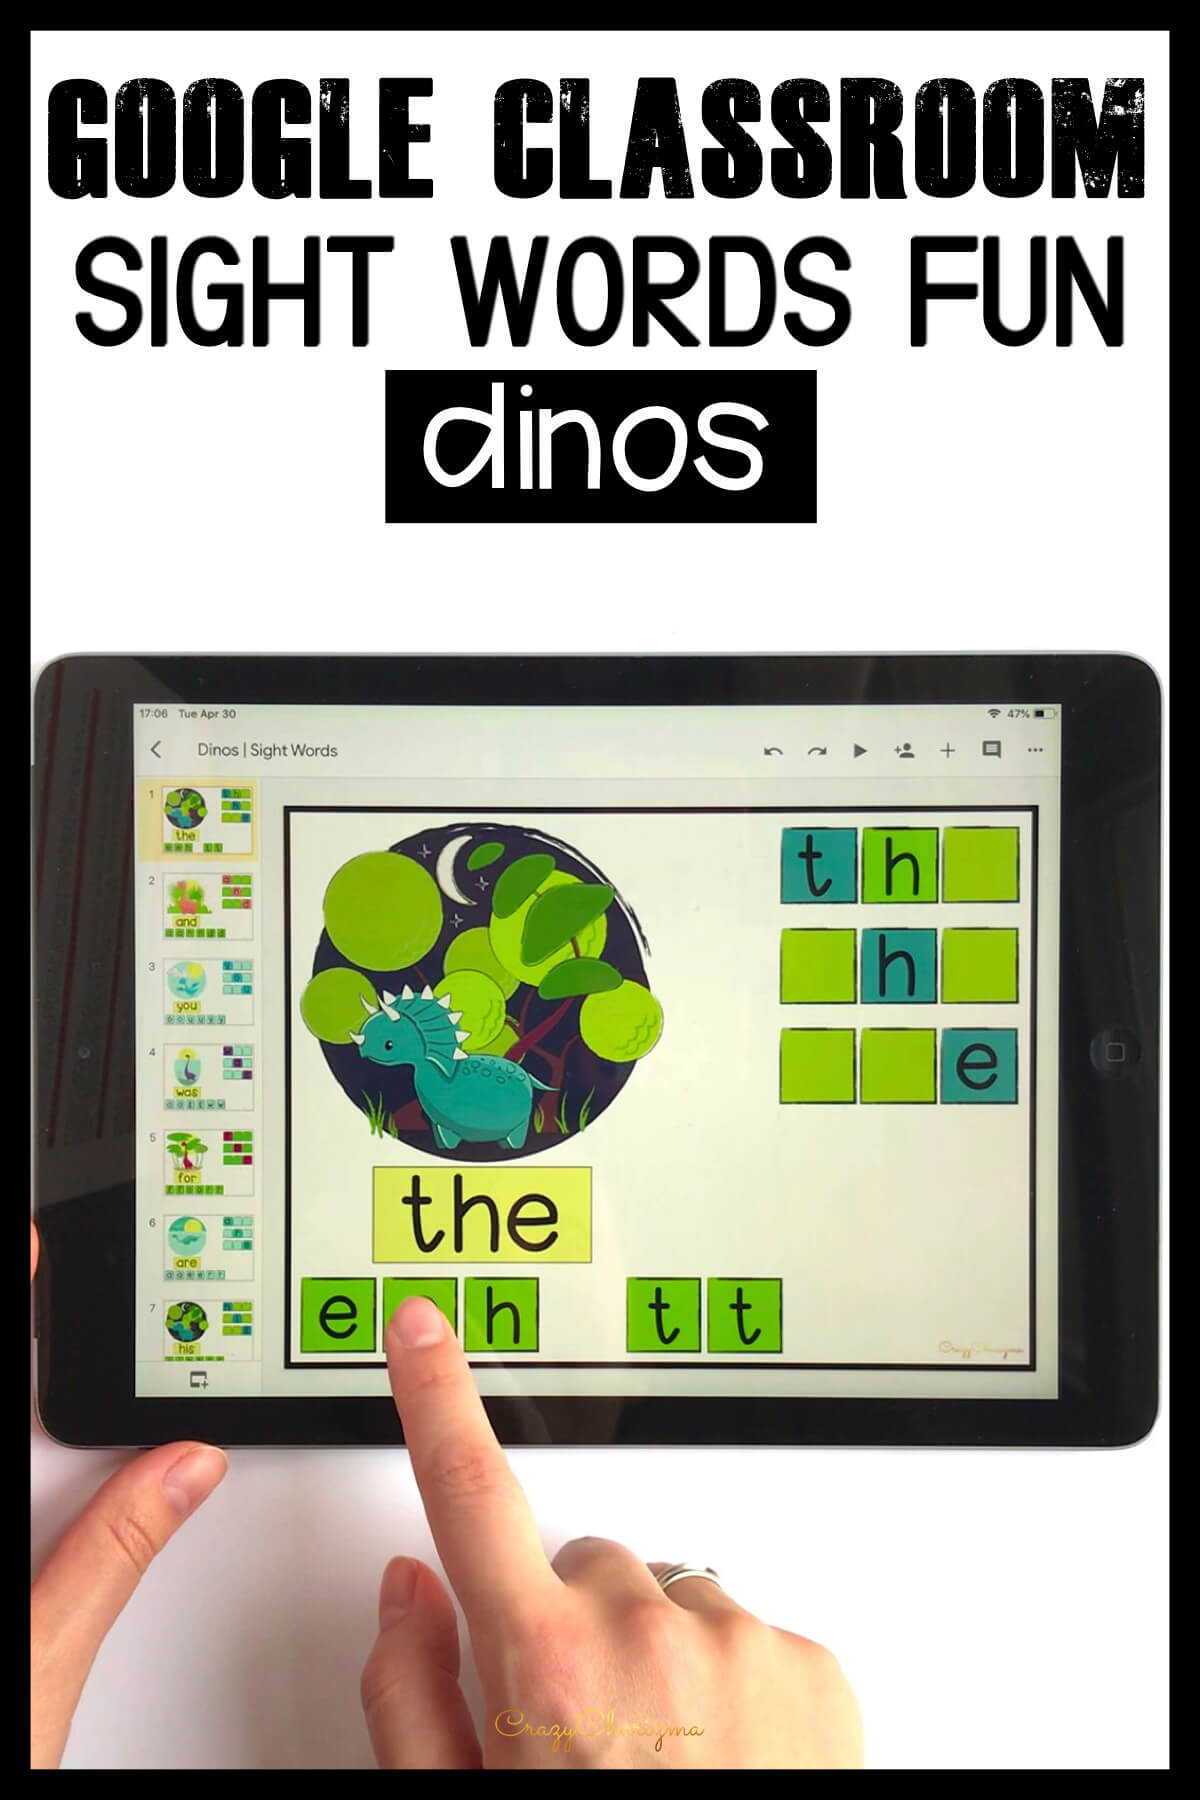 Google Classroom Activities for Kindergarten | Sight Words Games: Need quick, fun and easy to use sight words games? Grab these Google Classroom activities for kindergarten to practice sight words. Engage kids with tech and reading at the same time!